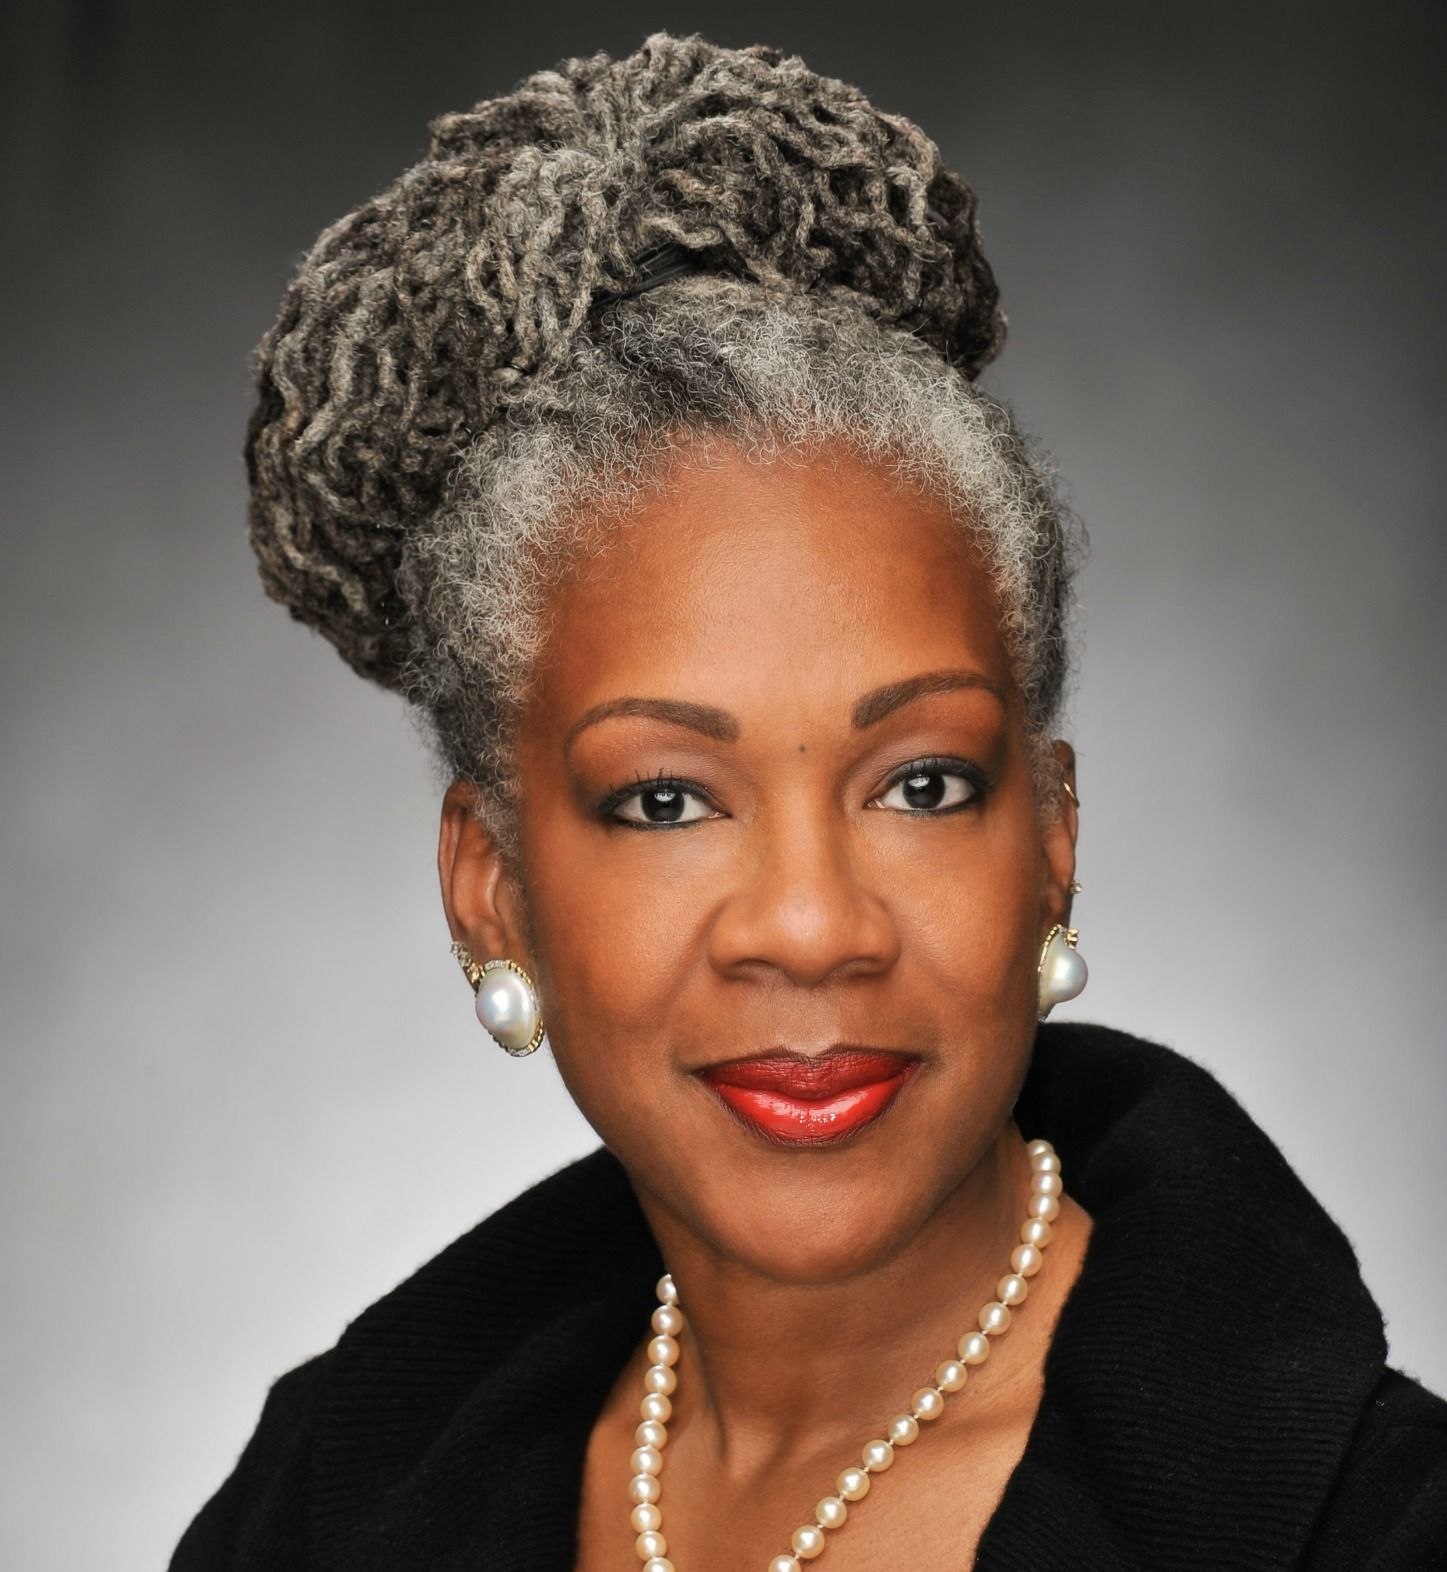 BlackAfrican American Women with Natural Gray Hair